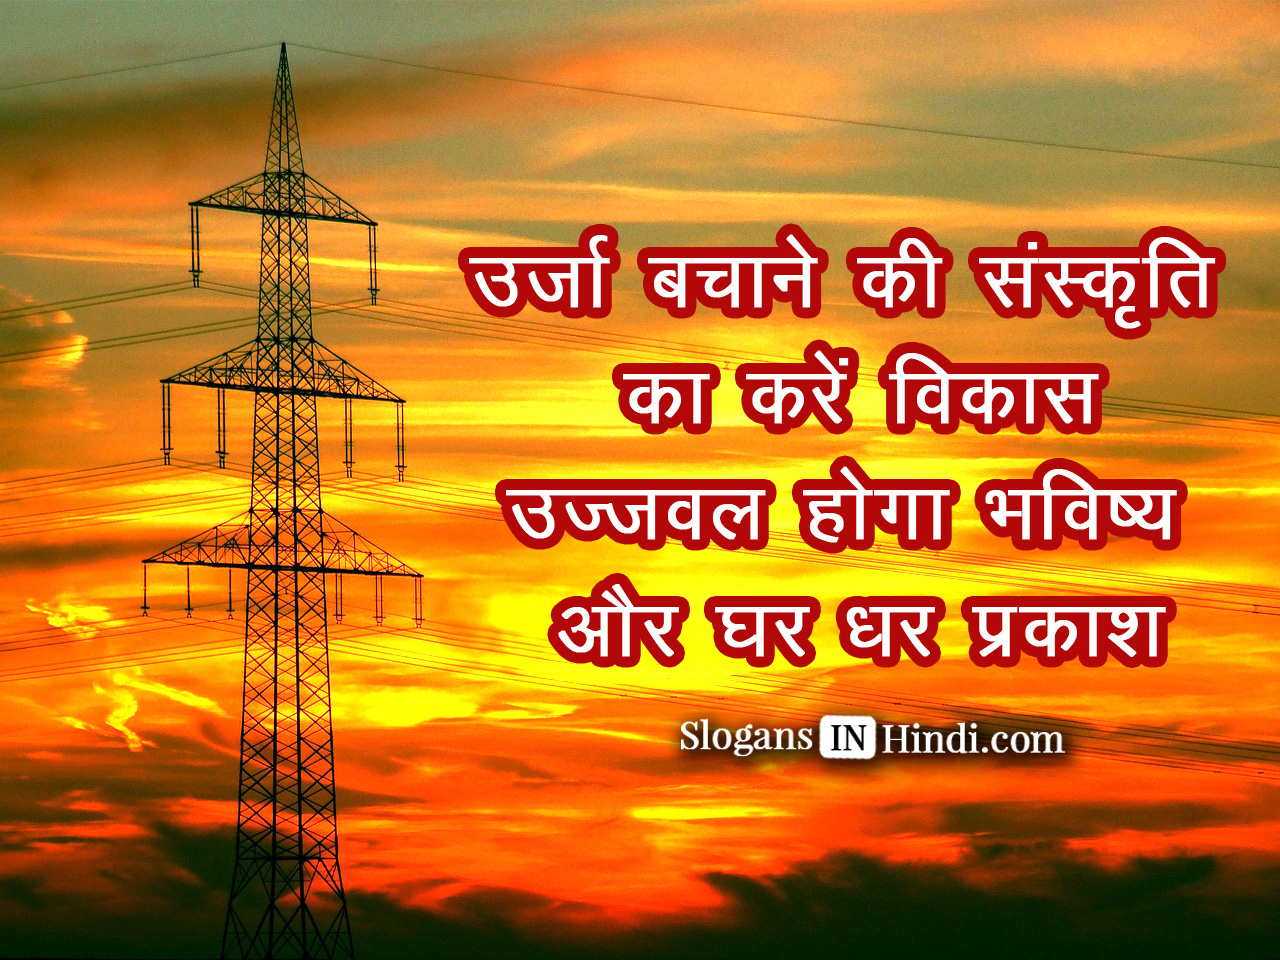 saving electricity in hindi Energy drains away in discomforts pain, fear and anger contribute to it energy conserves well in comforts peace and happiness squarely promote it be with the .